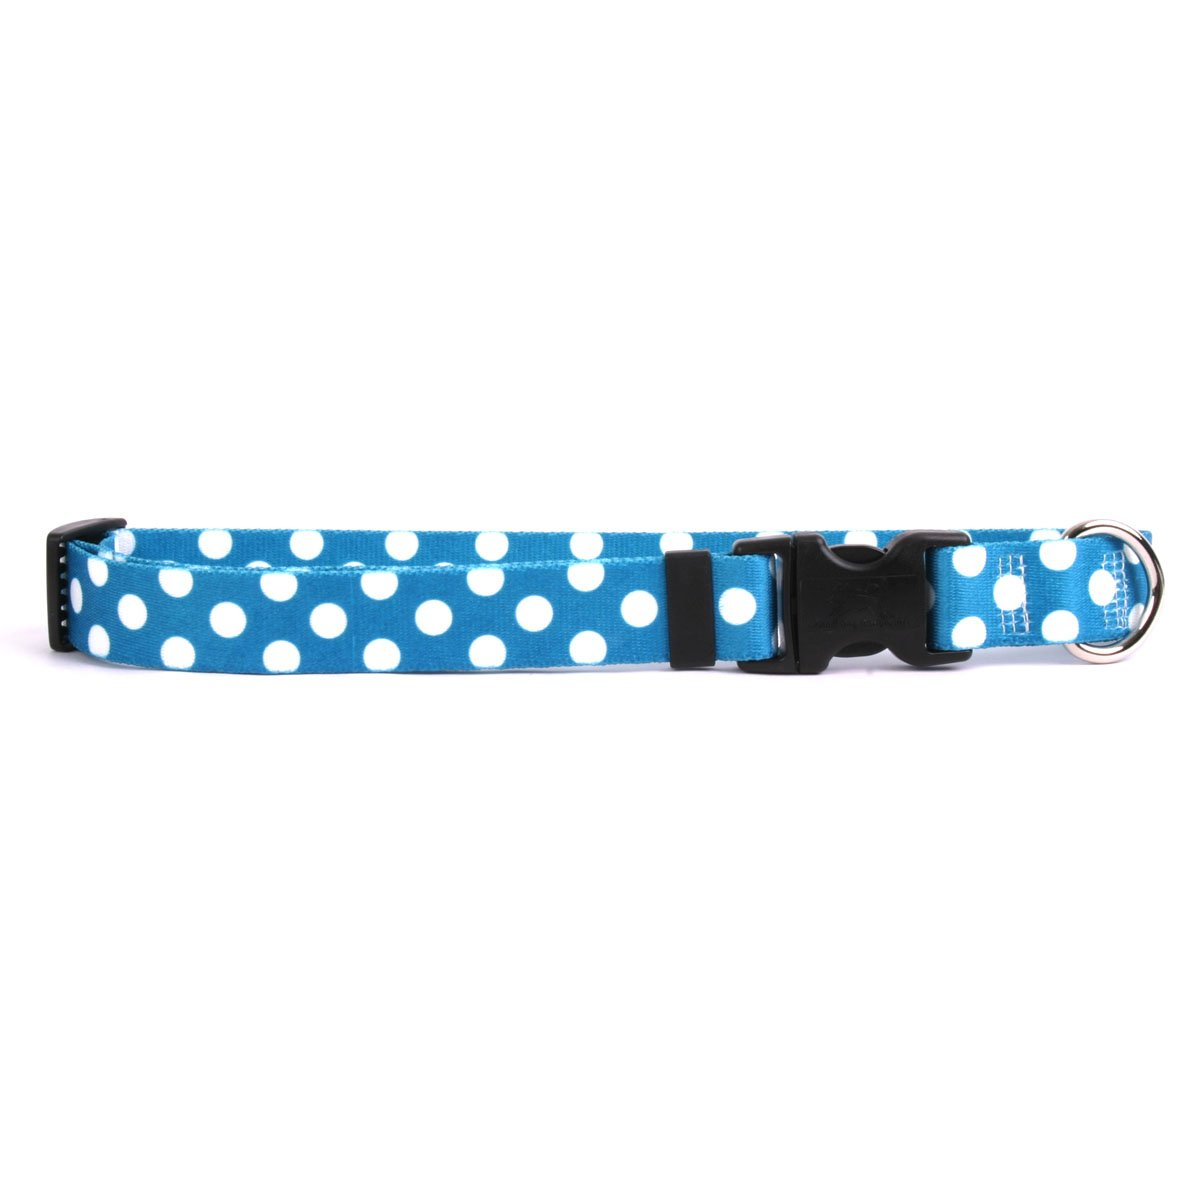 Yellow Dog Design Standard Easy-Snap Collar, Blueberry Polka Dot, Teacup 4'' - 9'' by Yellow Dog Design (Image #1)